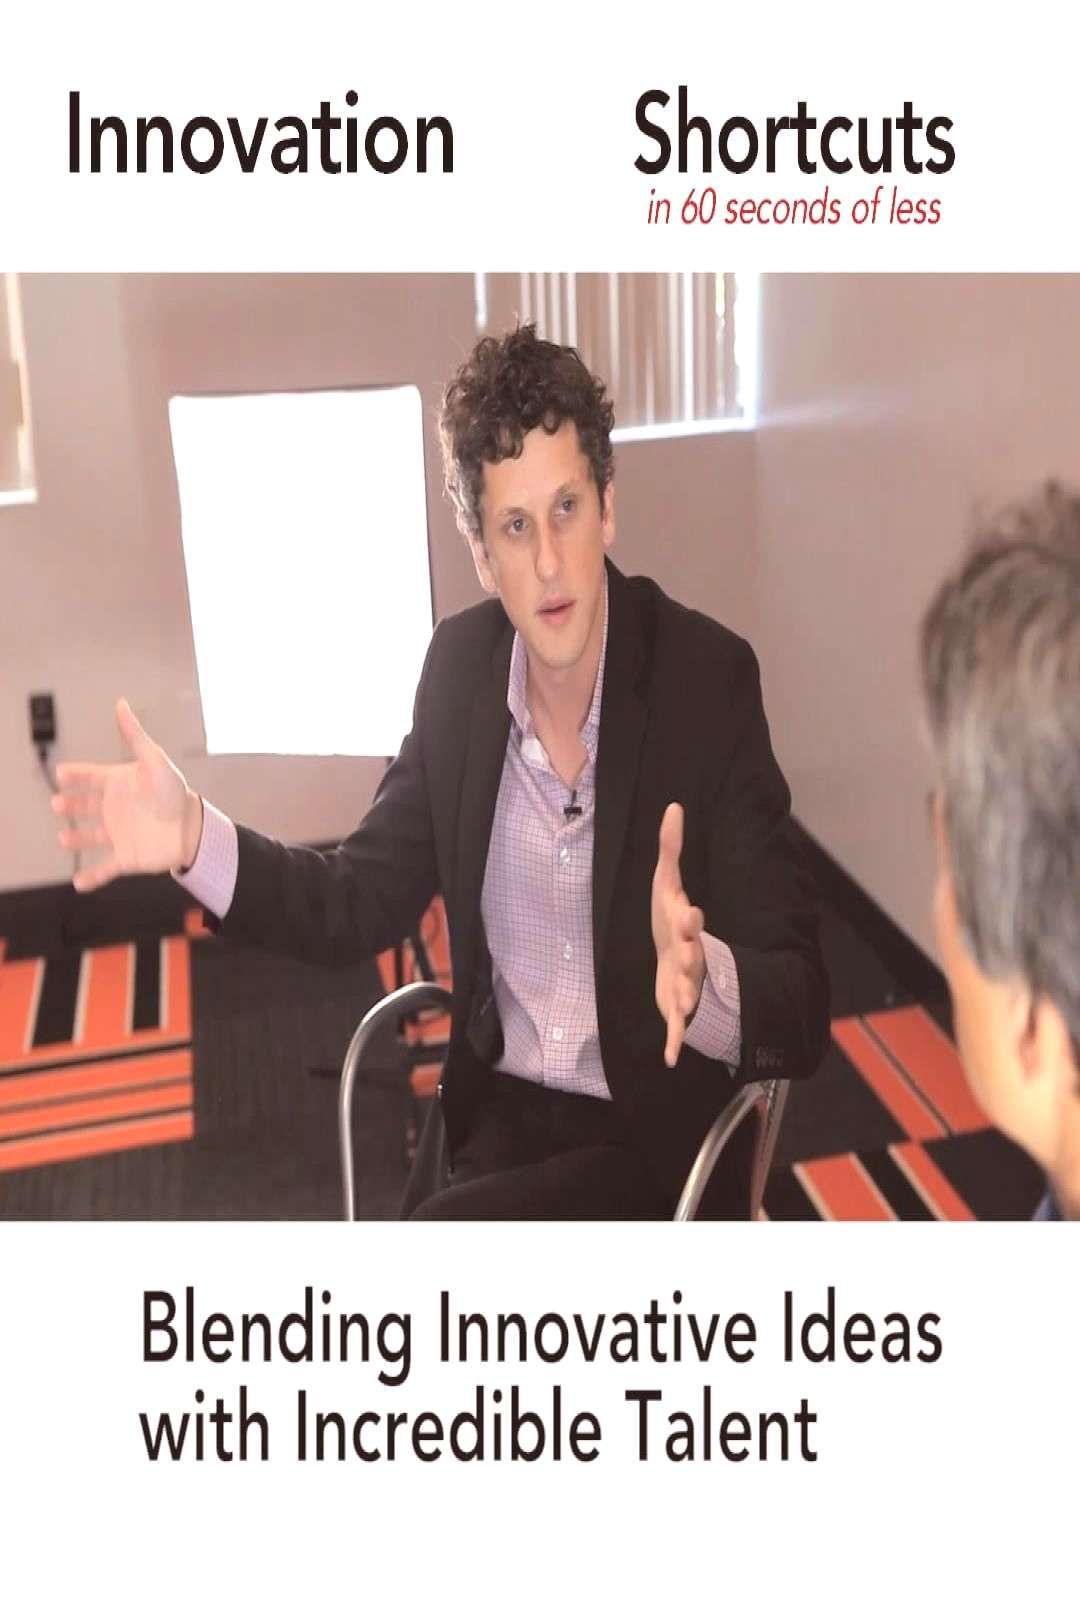 #makingmoney #lifeblood #business #people #inside #innova #your #stay #the #are #to The people inside your business are the lifeblood. To stay innovaYou can find Making money and more on our website.The people inside your busines...